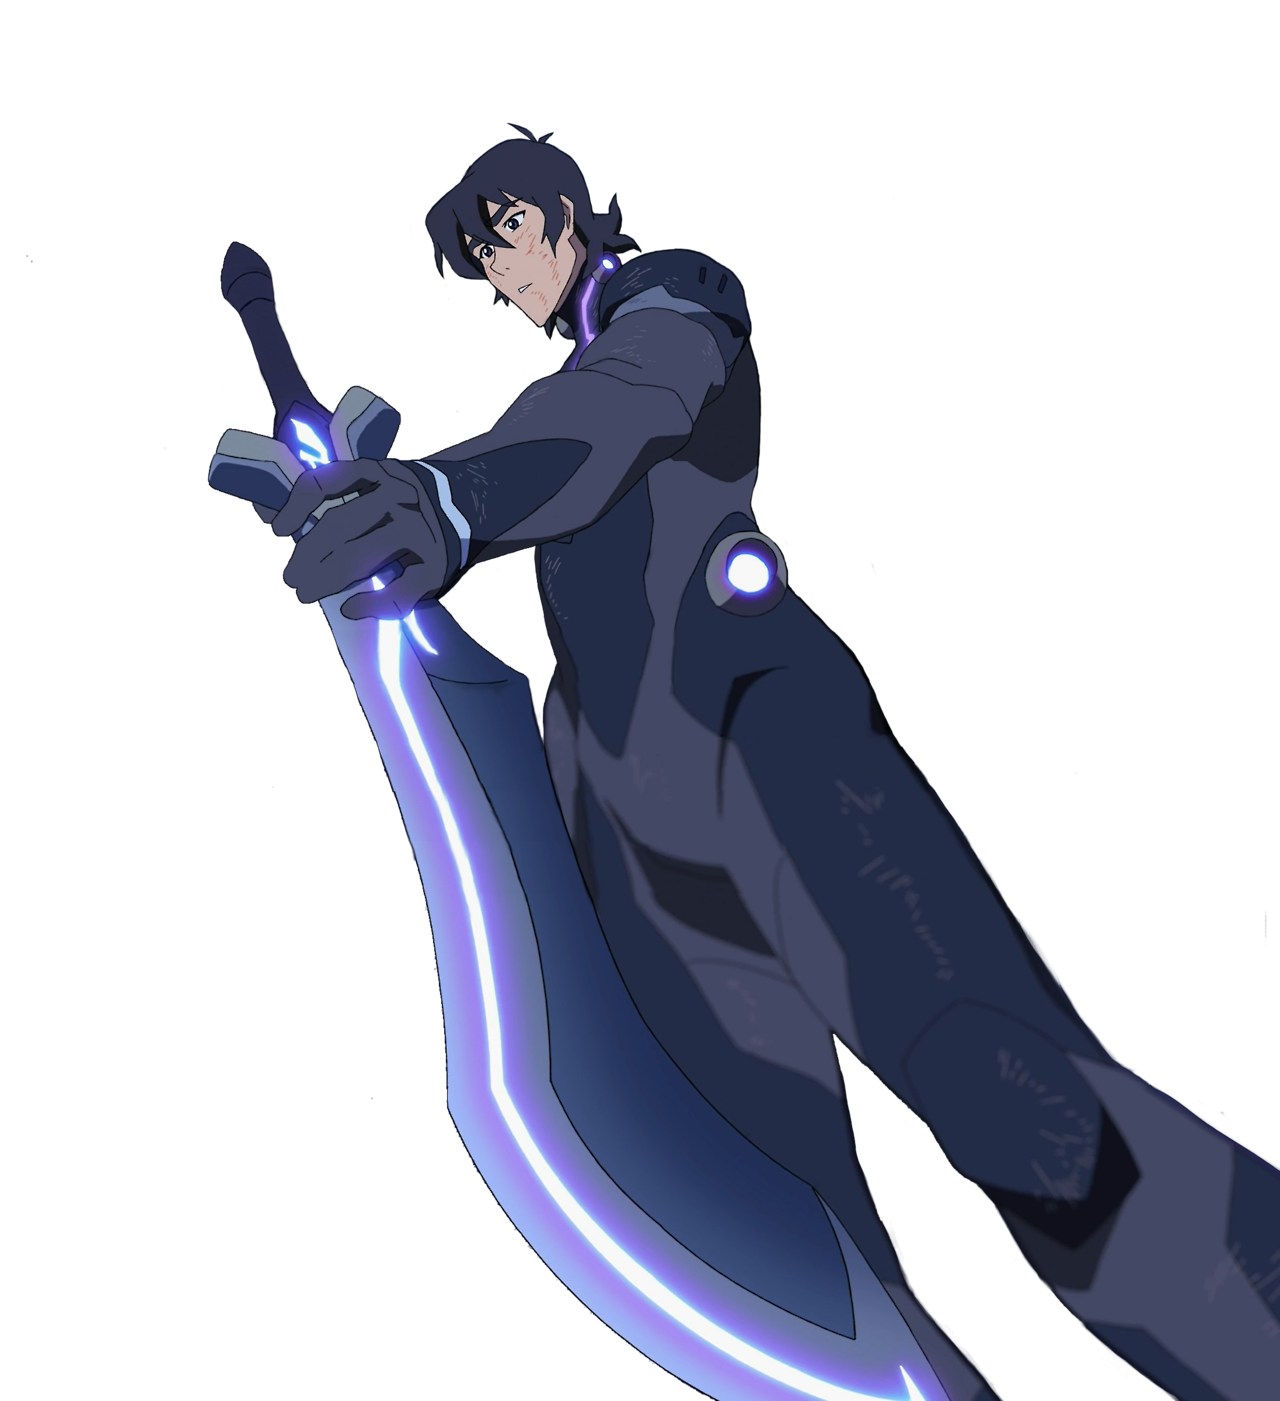 Transparent voltron blue bayard. Keith joins the blade